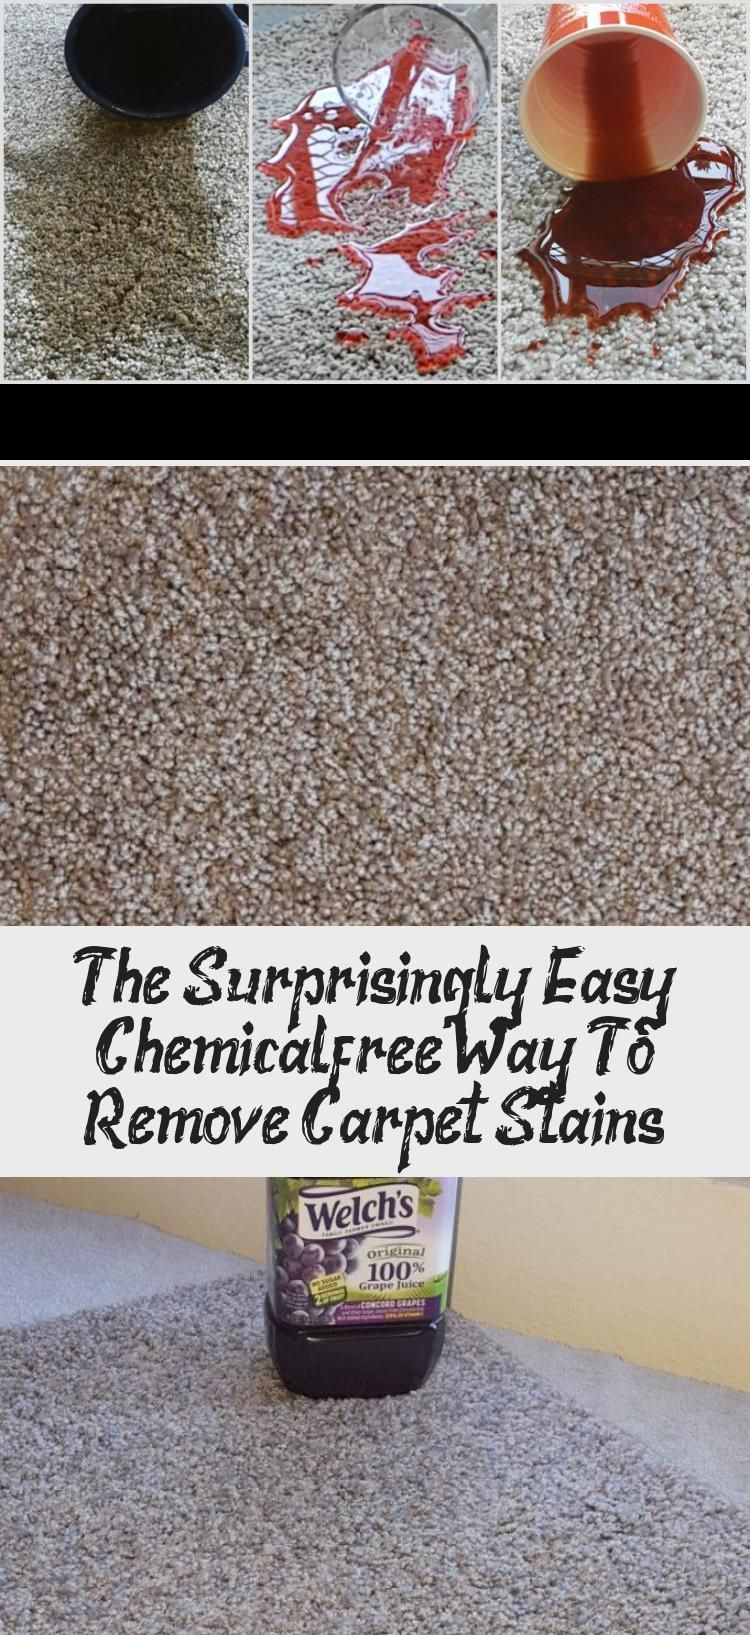 Spot Cleaner | Carpet Stain Removal | DIY Carpet stain remover | chemical-free n... ,  #Carpe... ,  #Carpe #Carpet #chemicalfree #Cleaner #DIY #redcarpetstainremover #Removal #remover #Spot #Stain